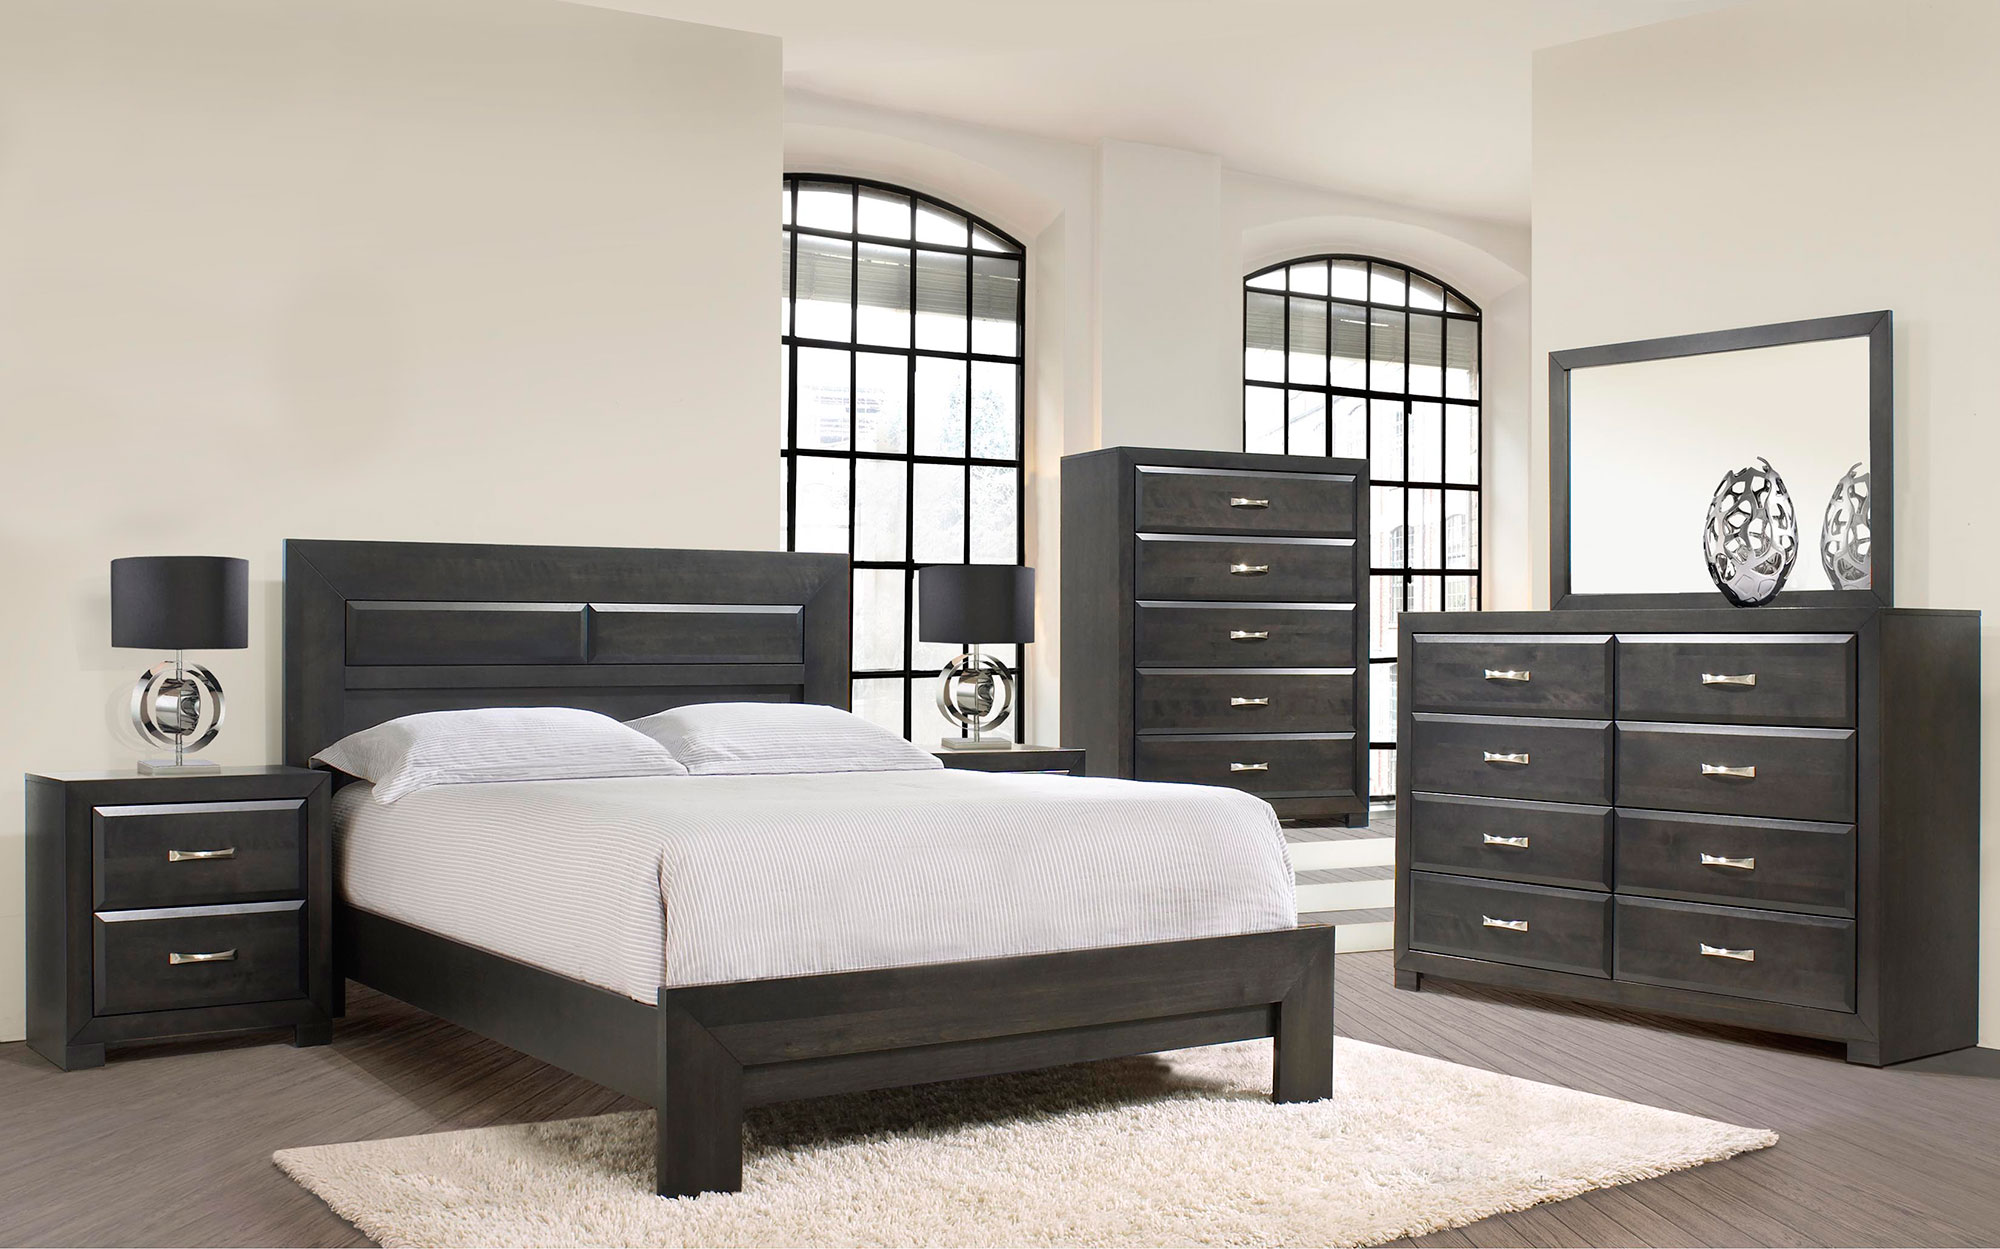 meuble chambre id es de d coration int rieure french decor. Black Bedroom Furniture Sets. Home Design Ideas